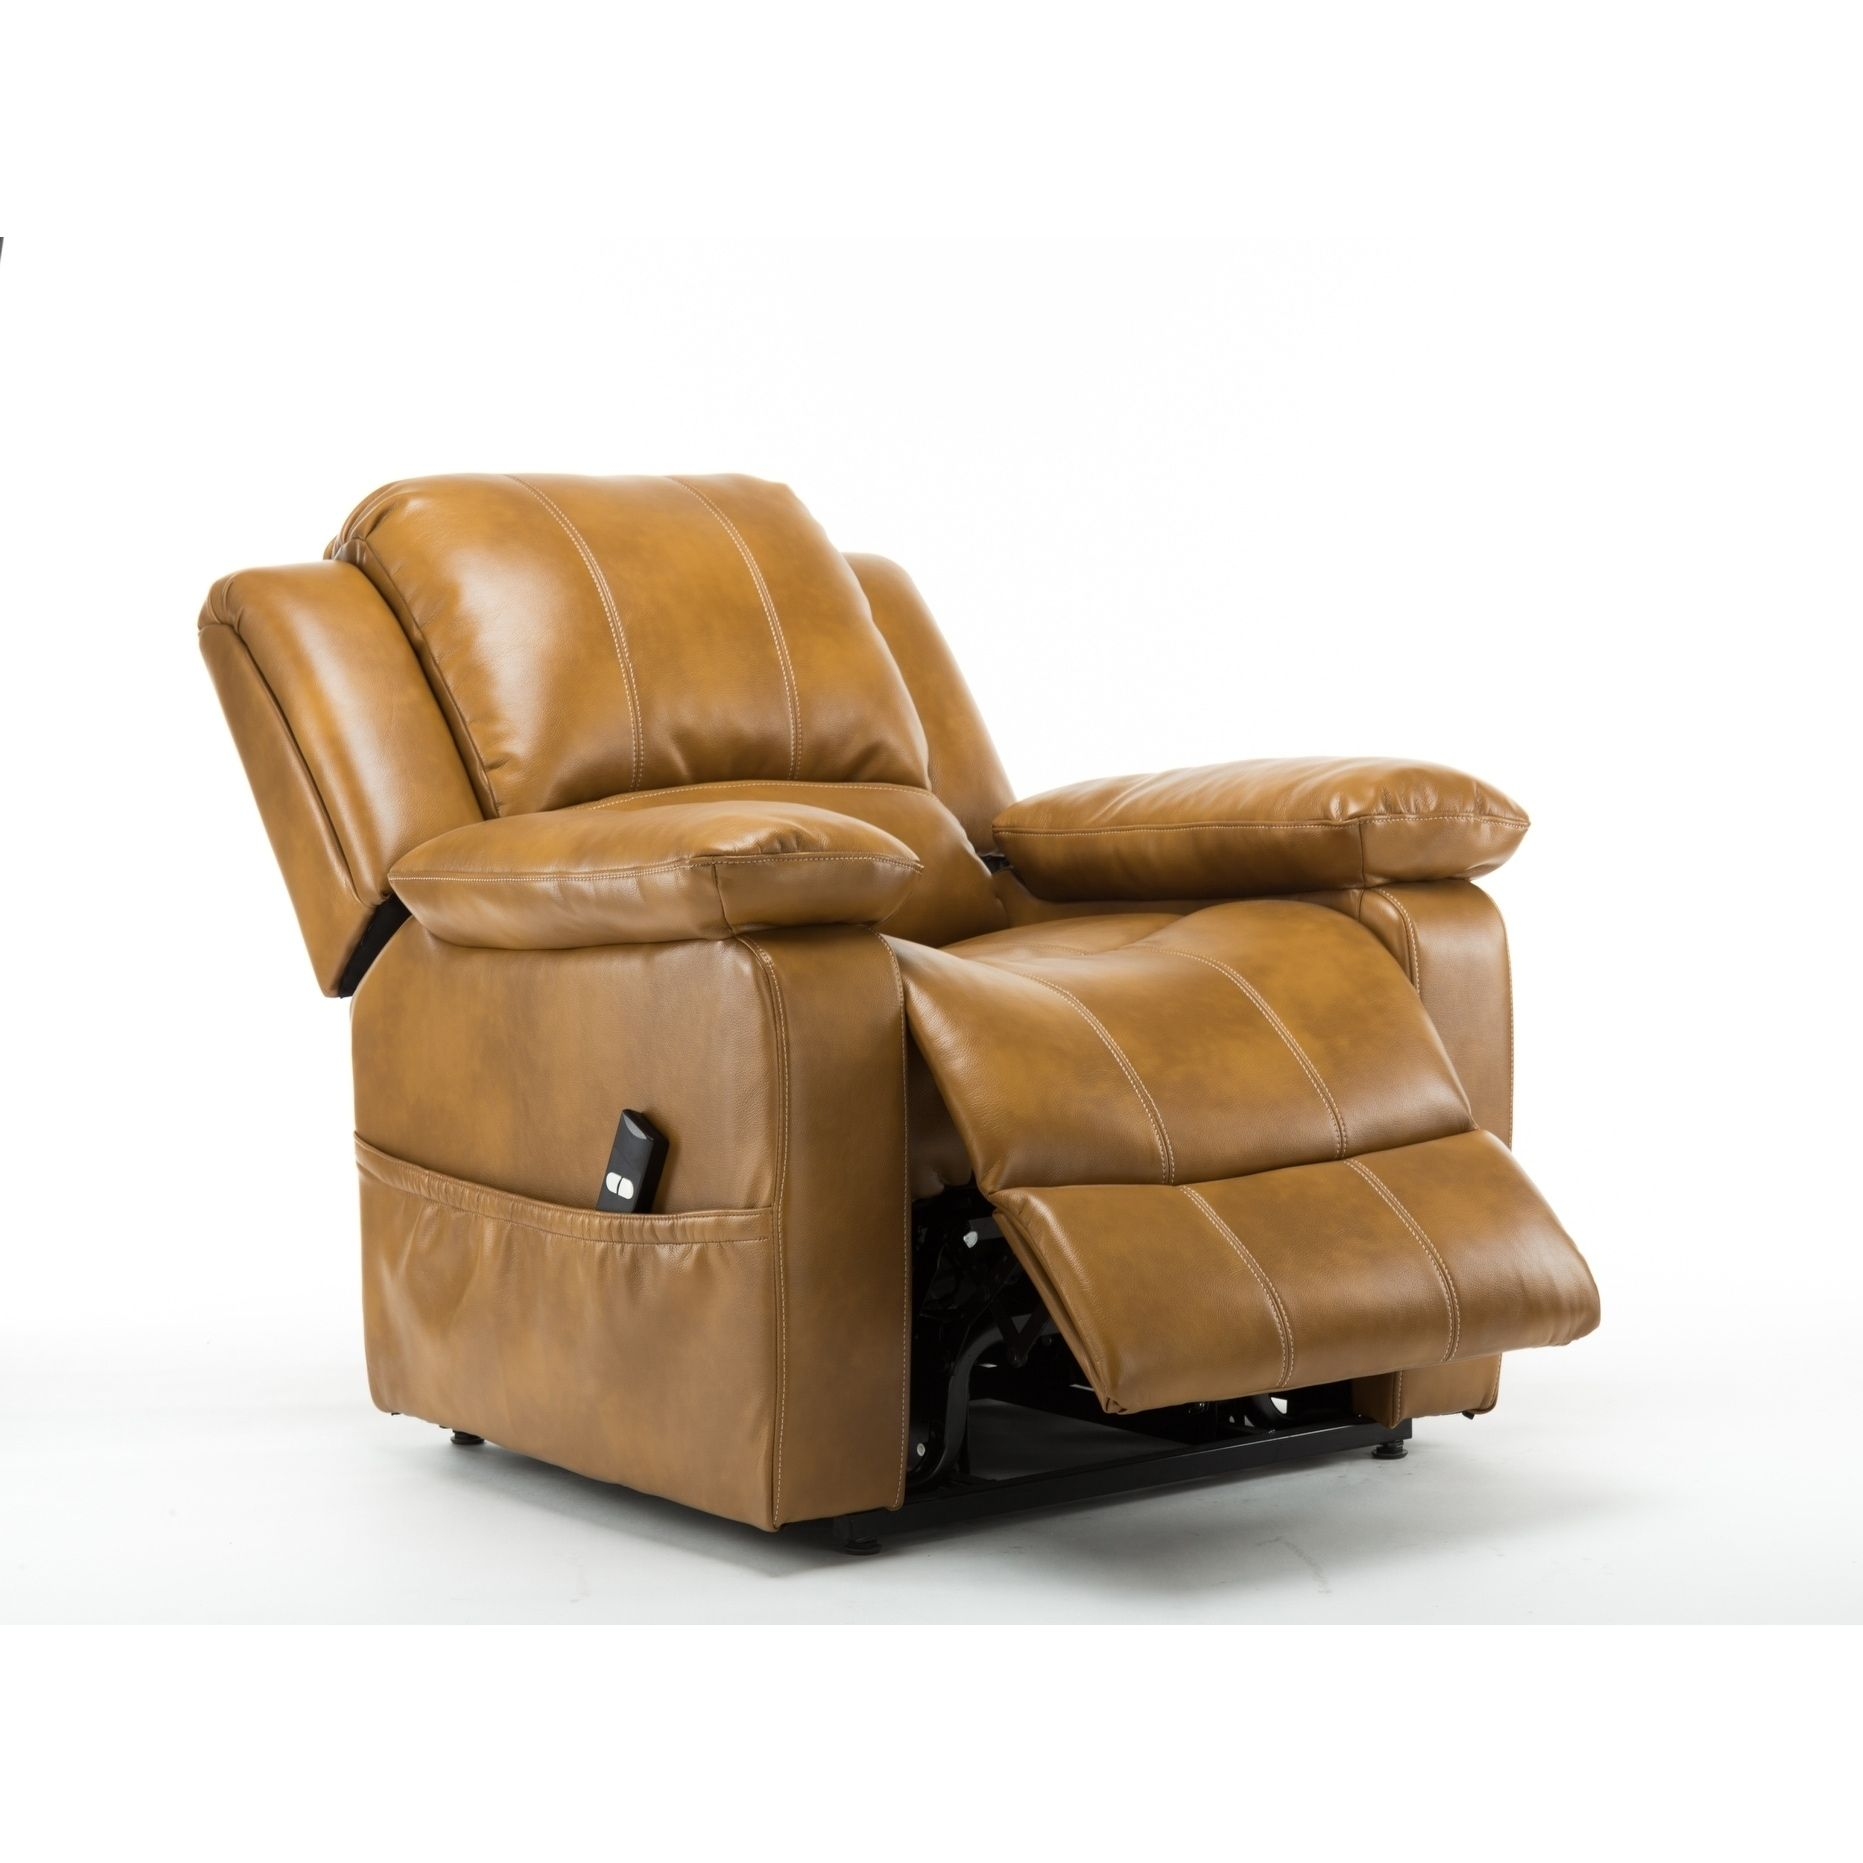 Overstock Com Online Shopping Bedding Furniture Electronics Jewelry Clothing More Lift Chairs Recliner Lift Chair Recliners